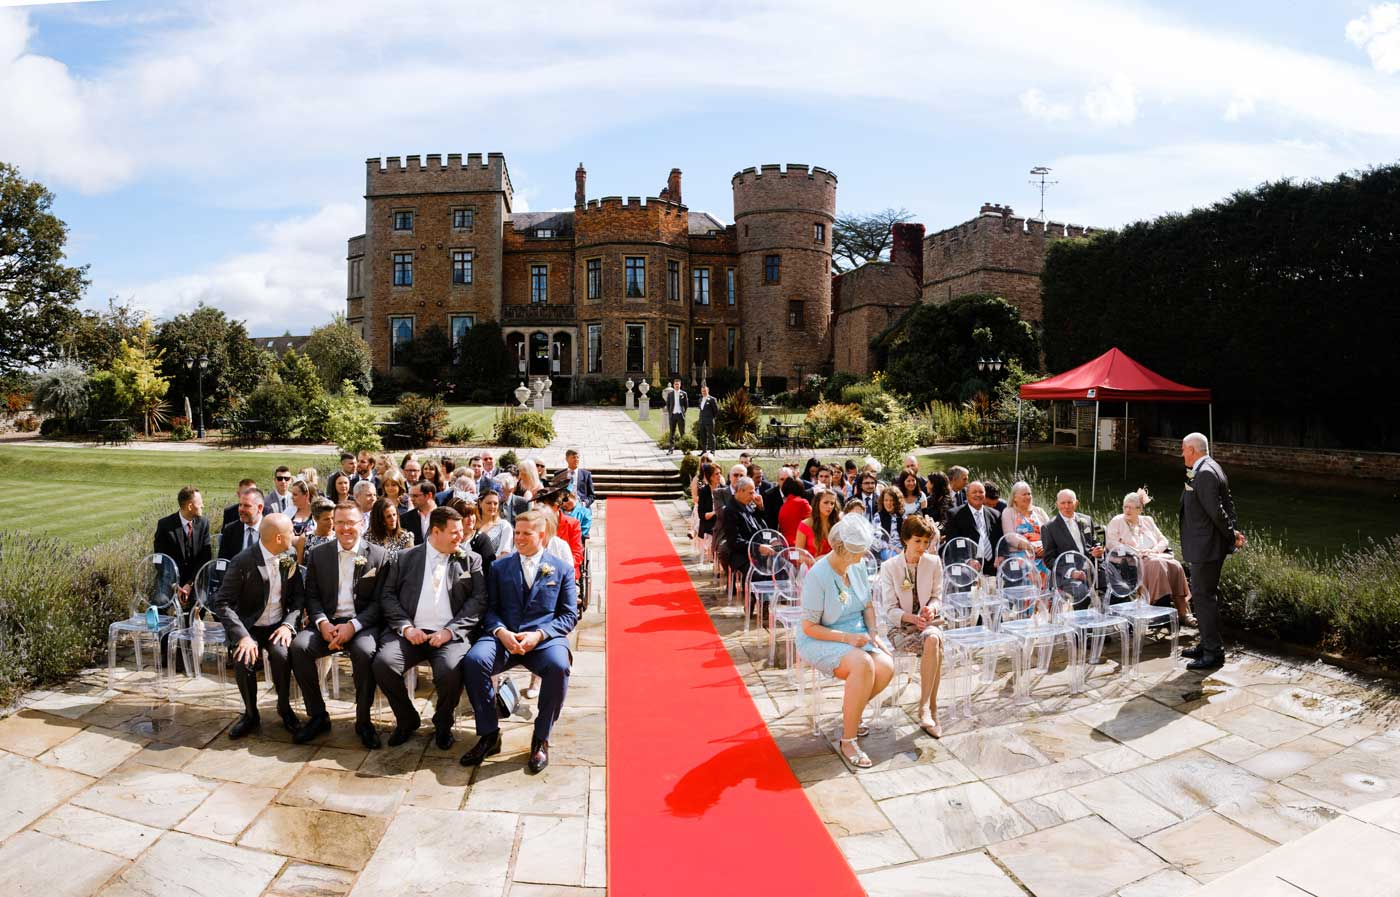 Guests waiting for the bride's arrival by Rowton Castle wedding photographer Clive Blair Photography